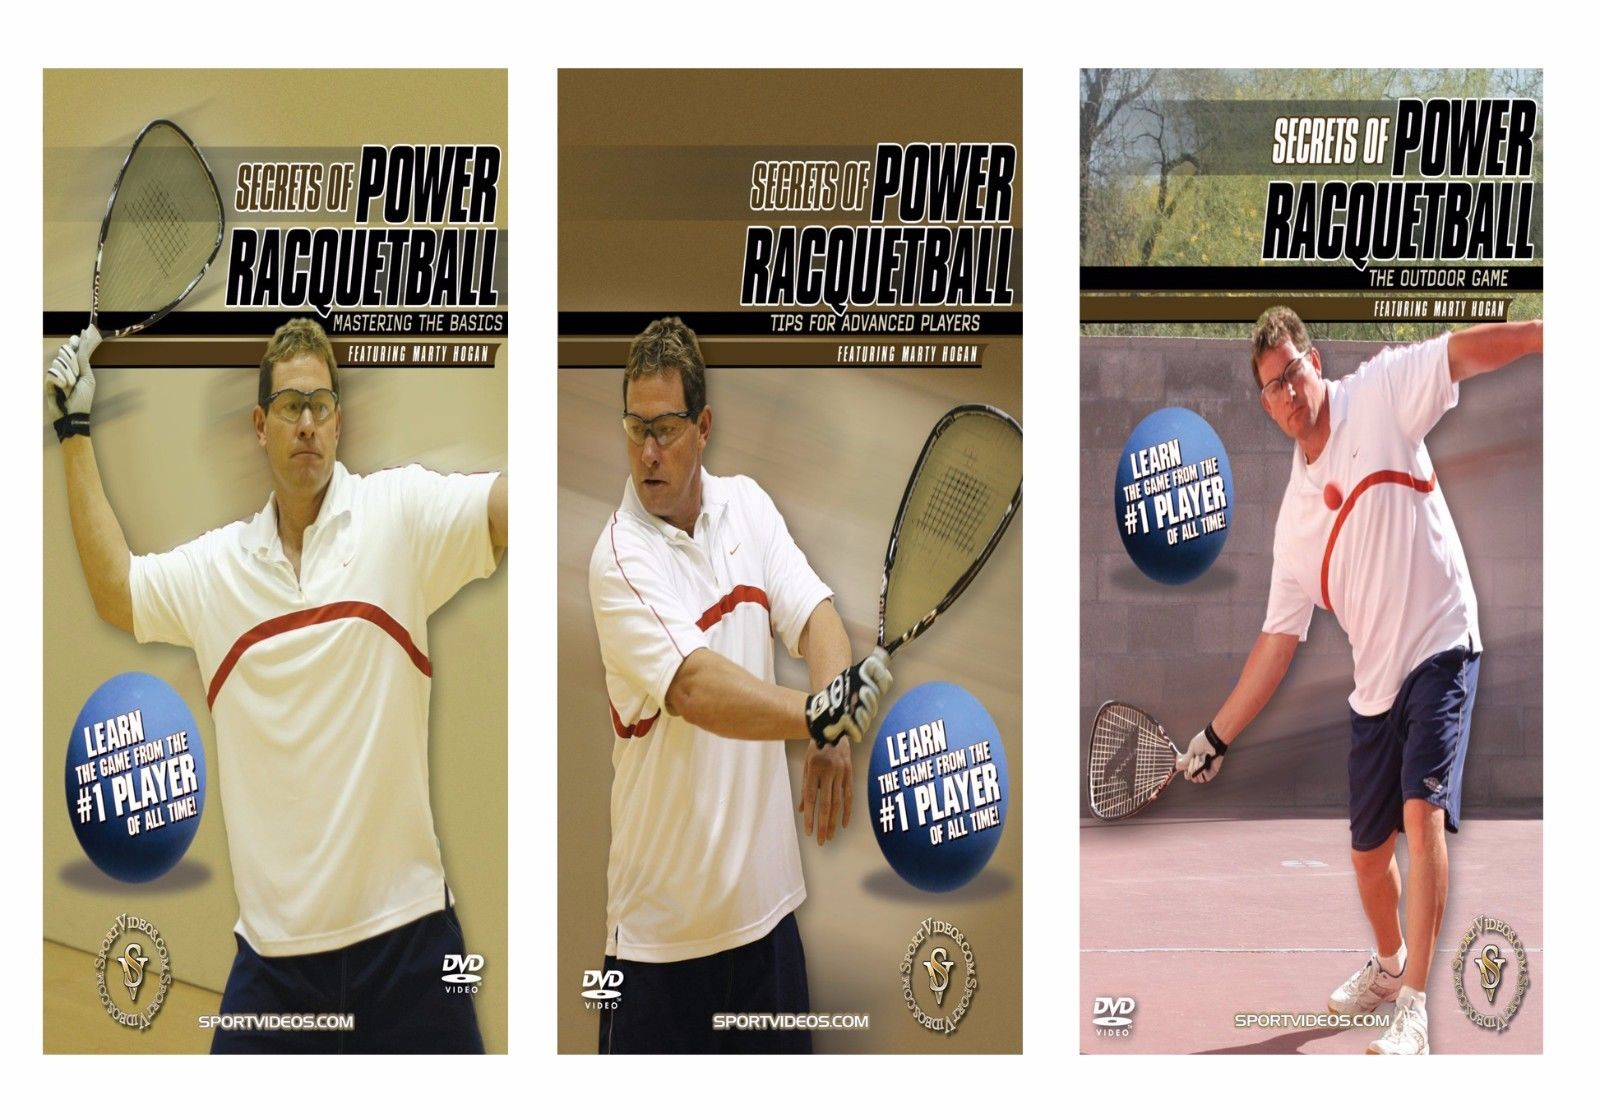 Secrets of Power Racquetball 3 DVD or Video Set featuring Marty Hogan - Free Shipping